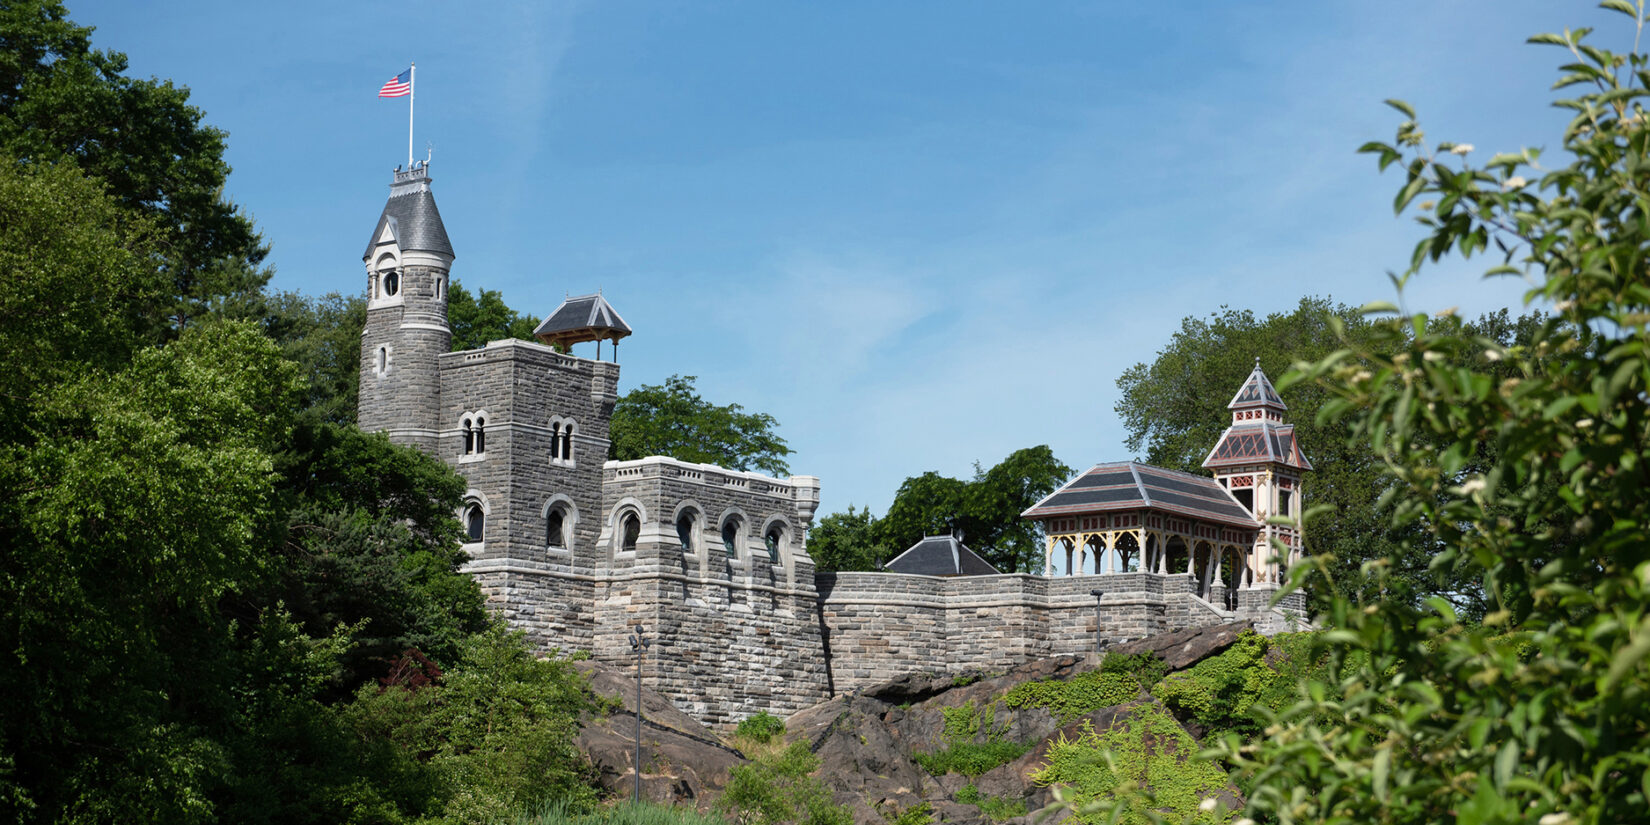 A view of Belvedere Castle seen from across Turtle Pond